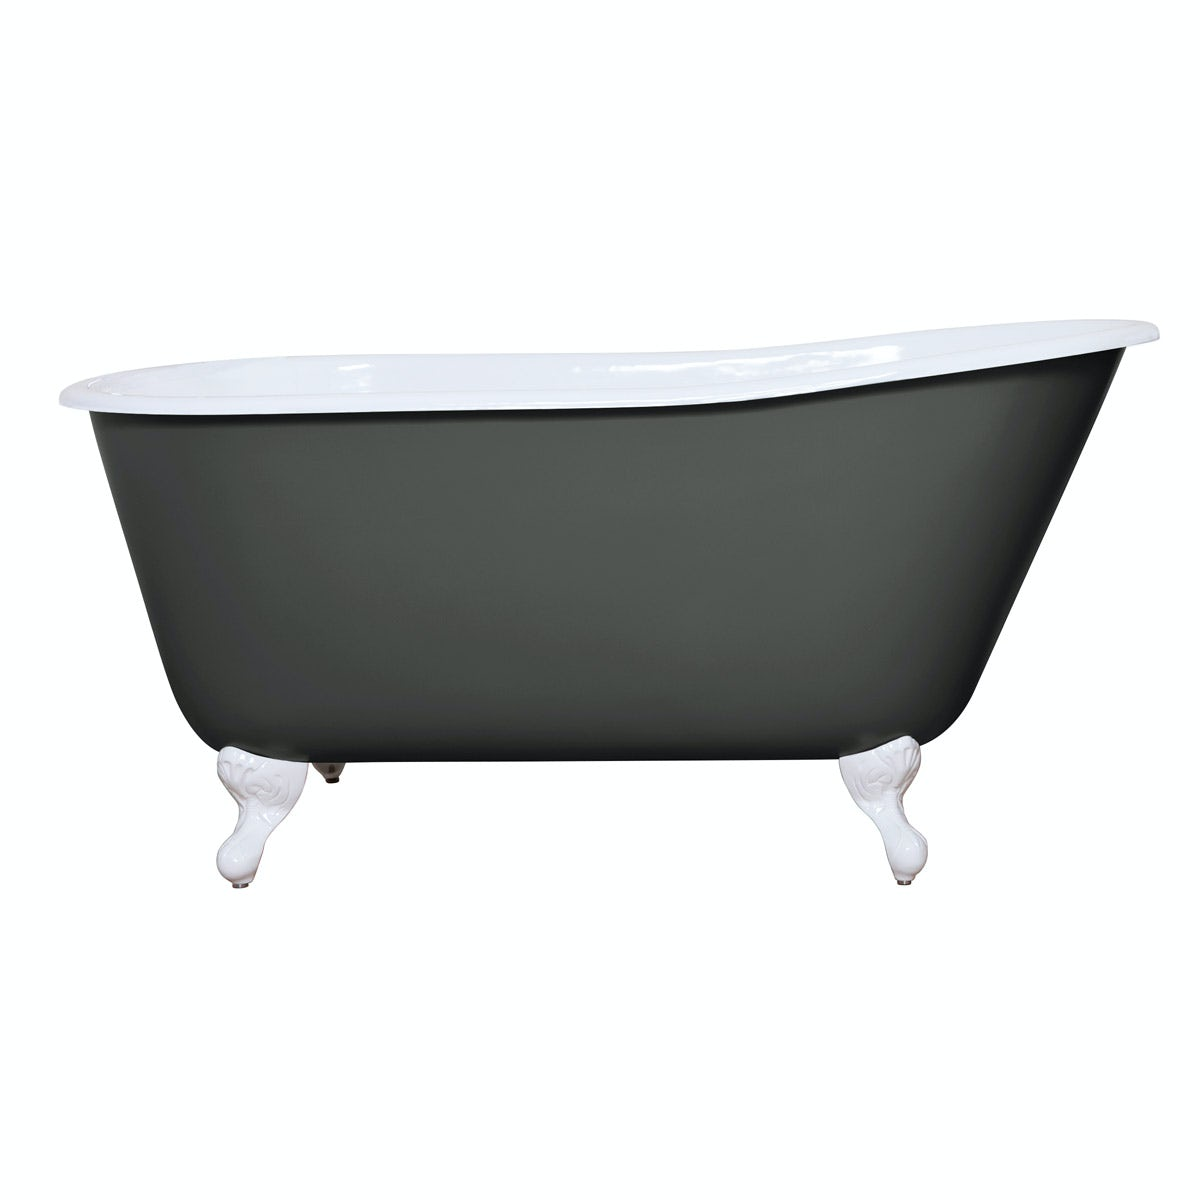 The Bath Co. Warwick smoke grey cast iron bath